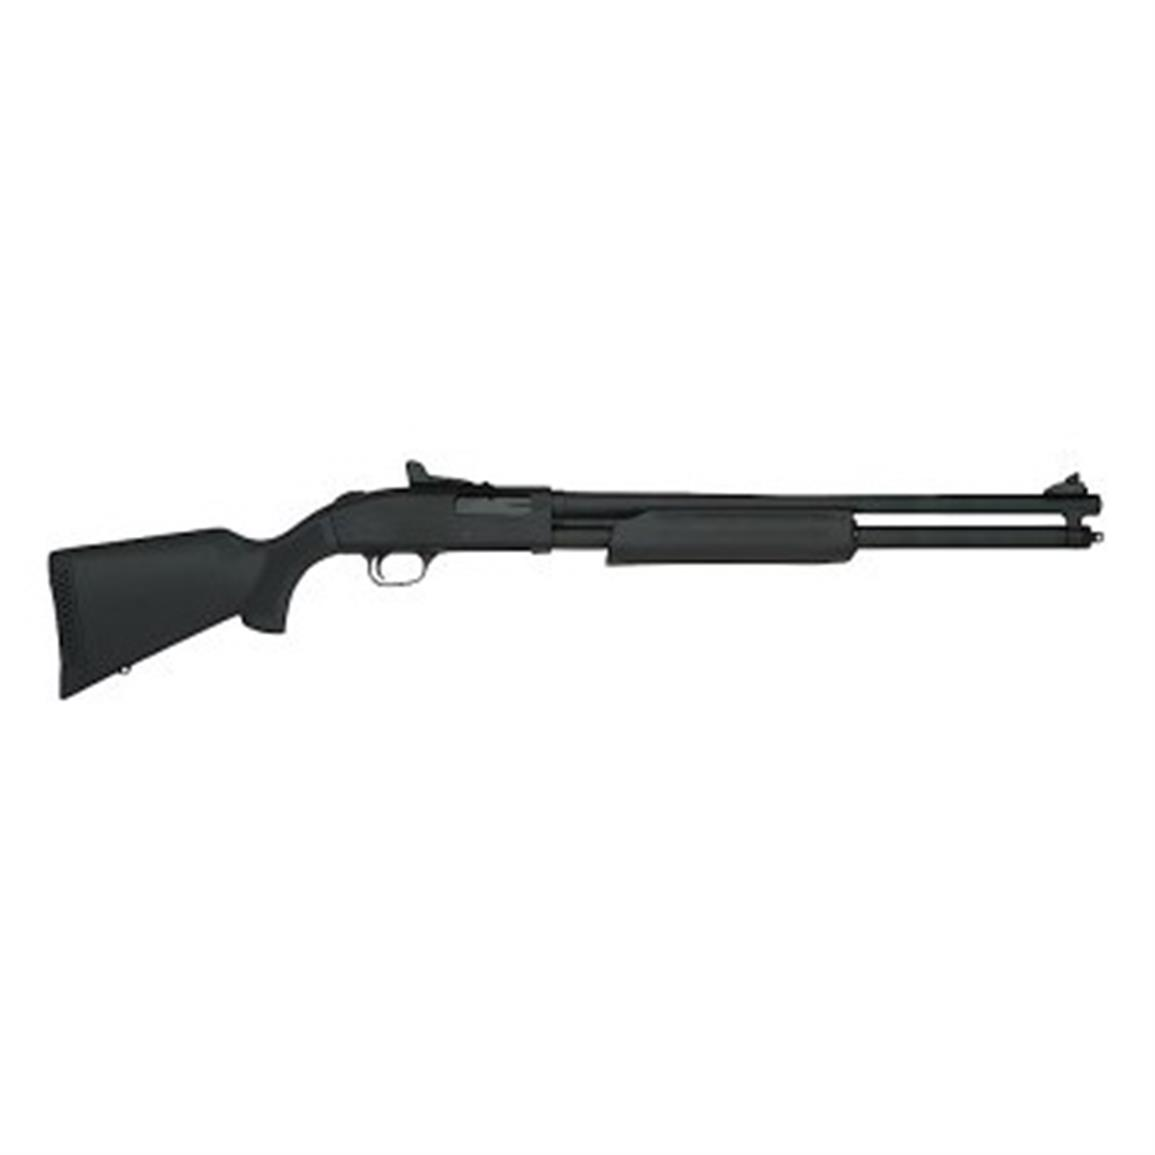 "Mossberg 930 SPX Blackwater, Semi-Automatic, 12 Gauge, 18.5"" Barrel, 8+1 Rounds"